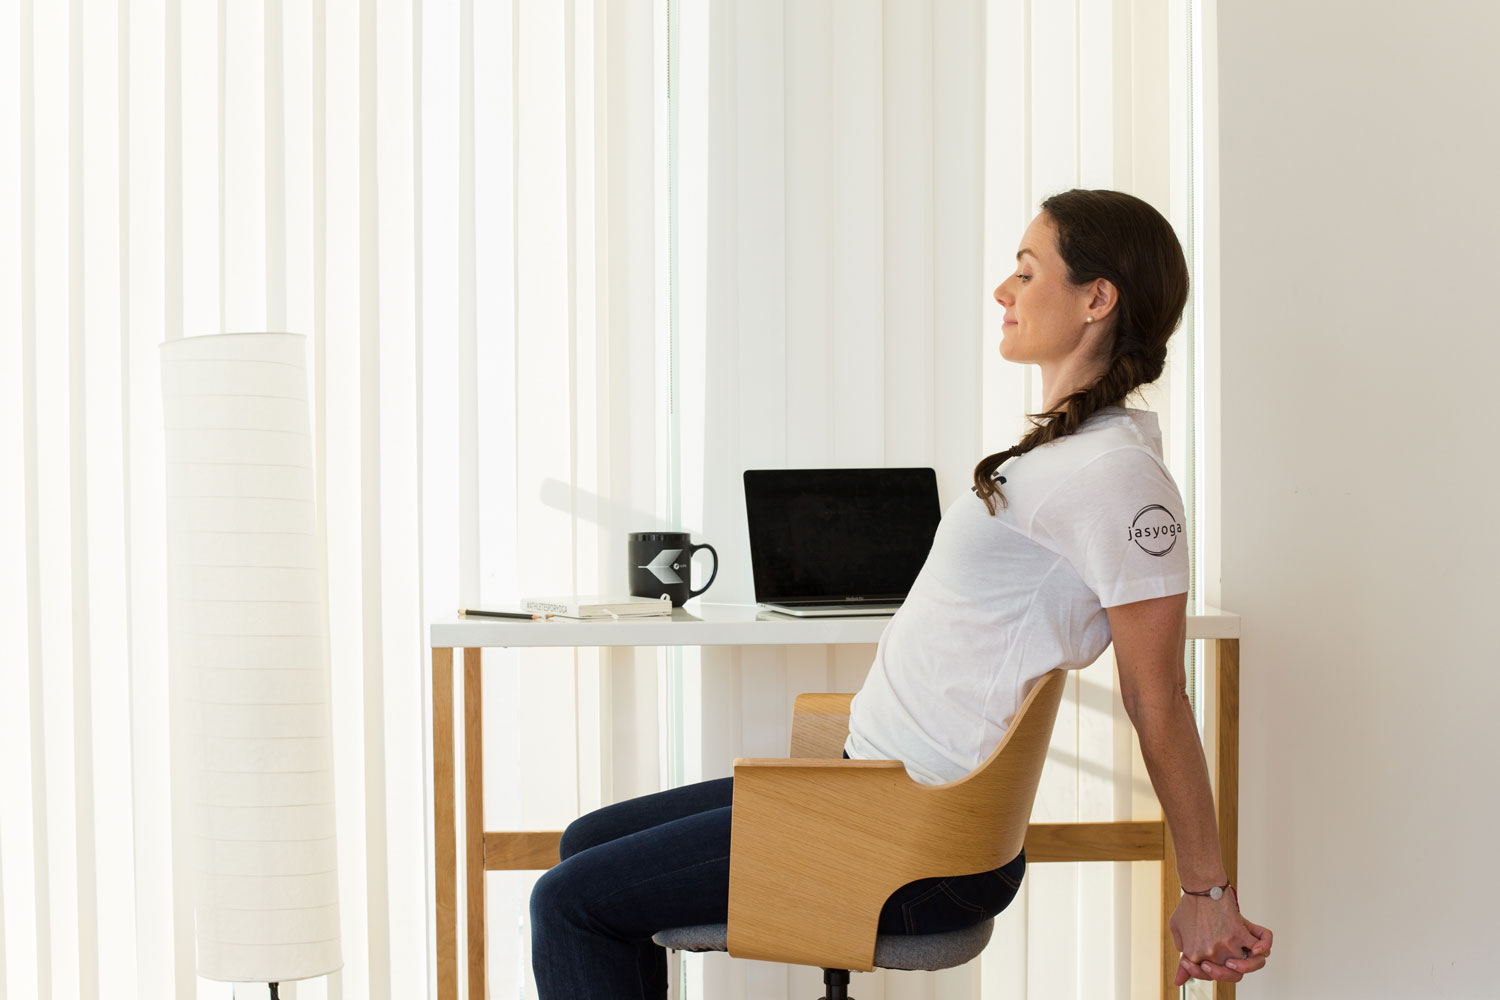 Chair Yoga while seated at desk.